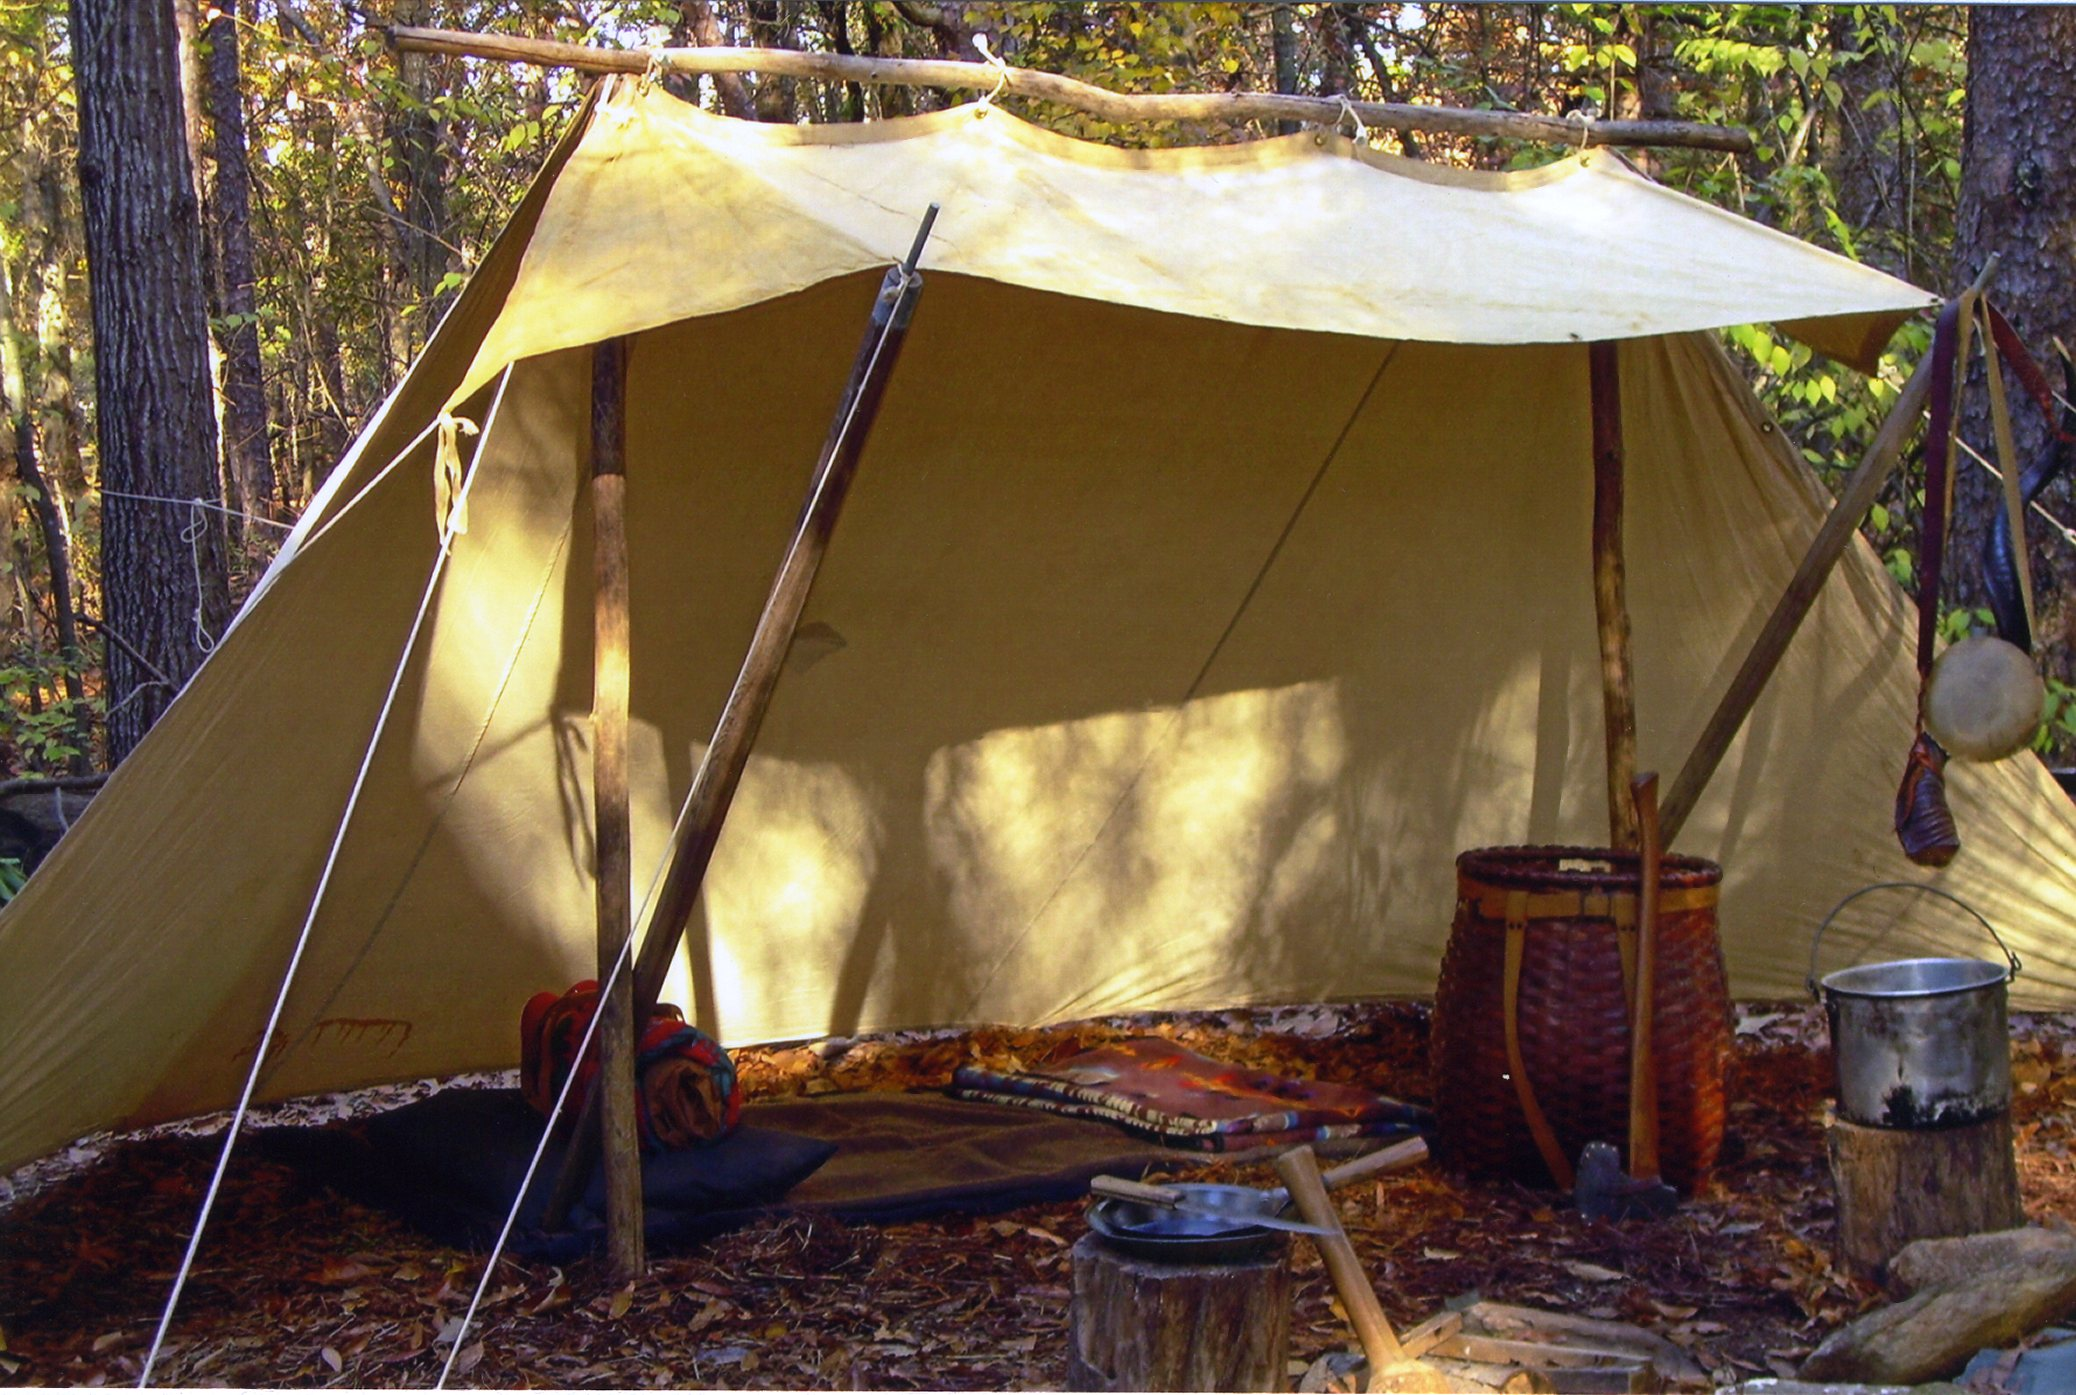 Whelen Lean-To. Photo Steve Watts David Wescott & In Praise Of The Whelen Lean-To by Steven M. Watts | Master Woodsman